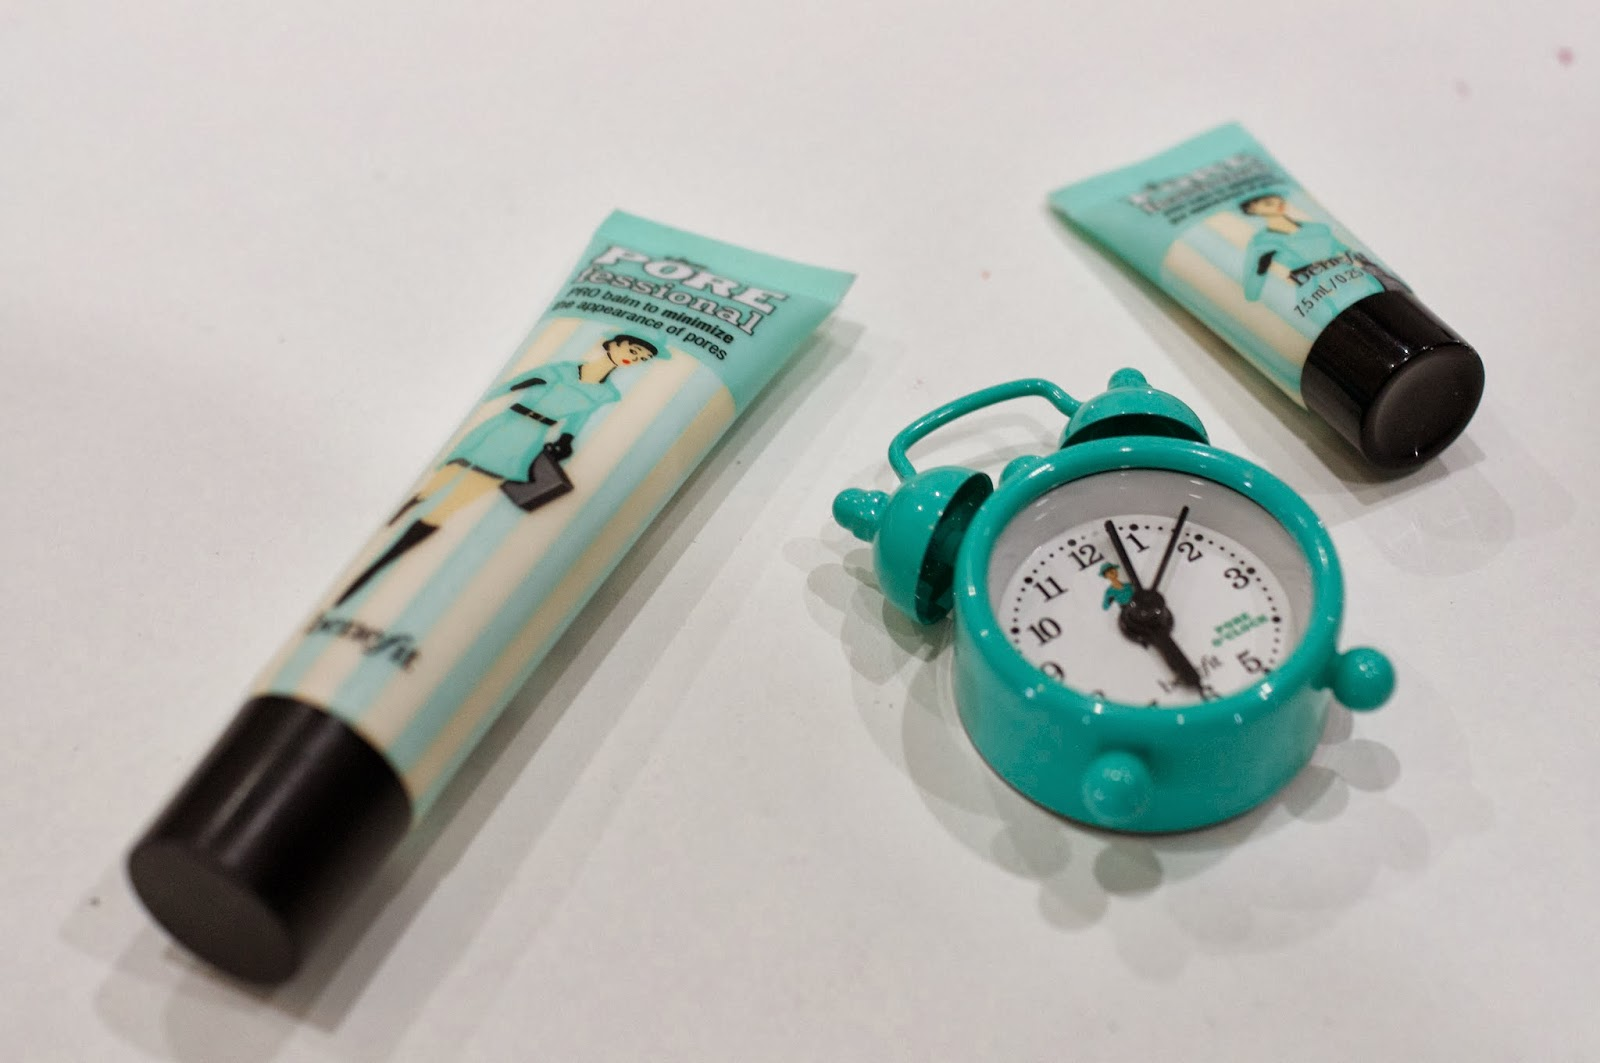 The Porefessional by Benefit